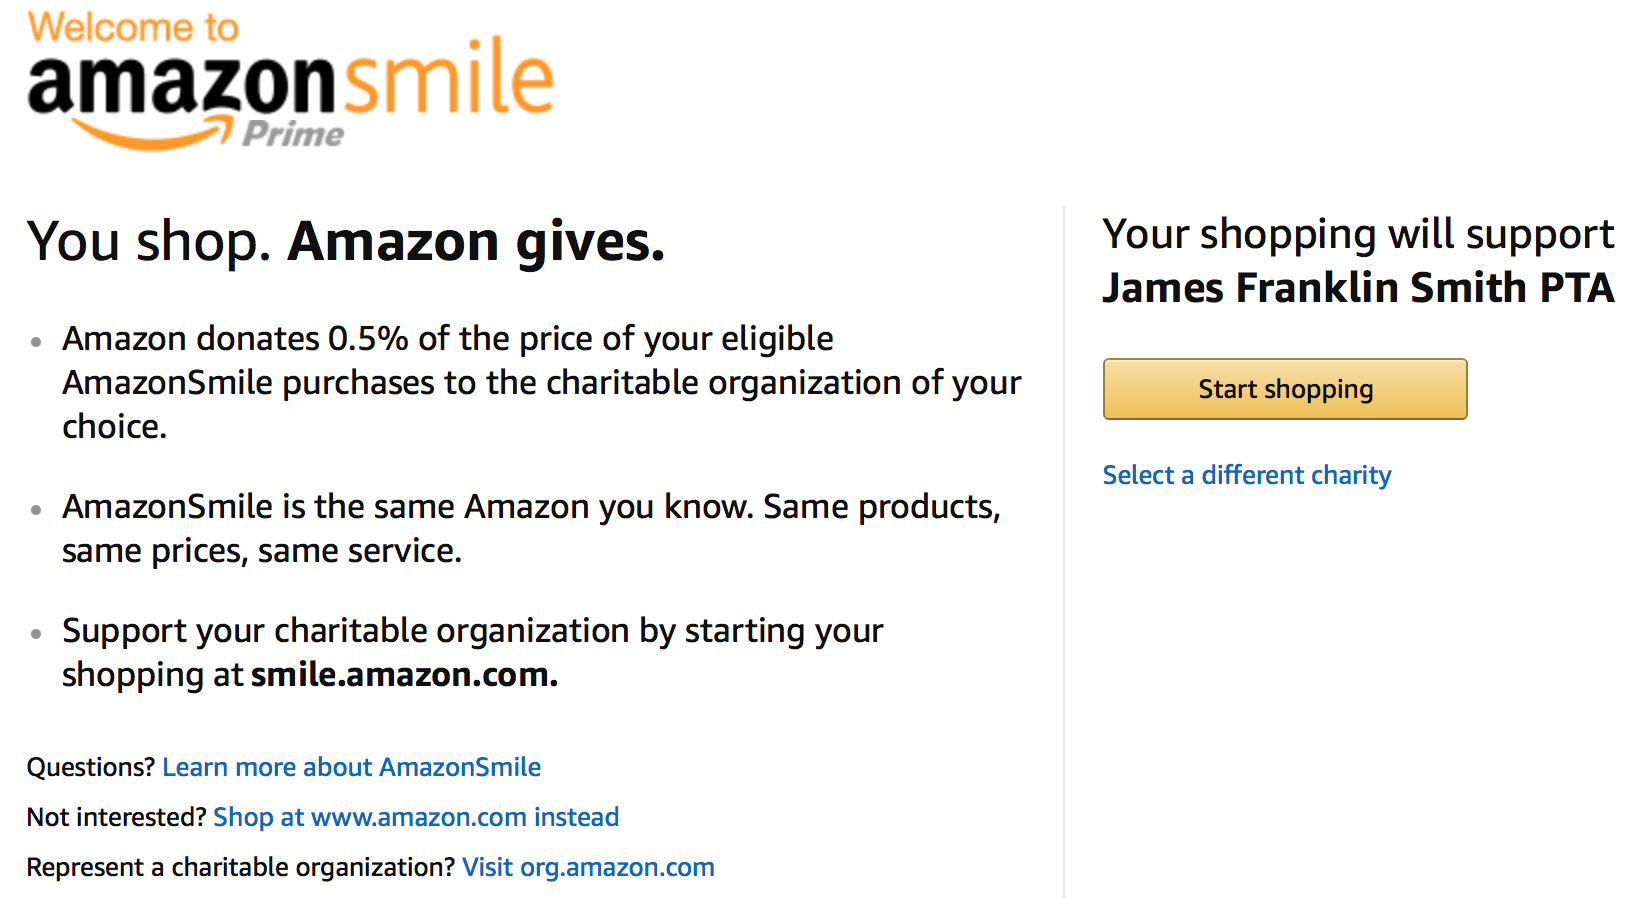 AmazonSmile Donate to JFSPTA